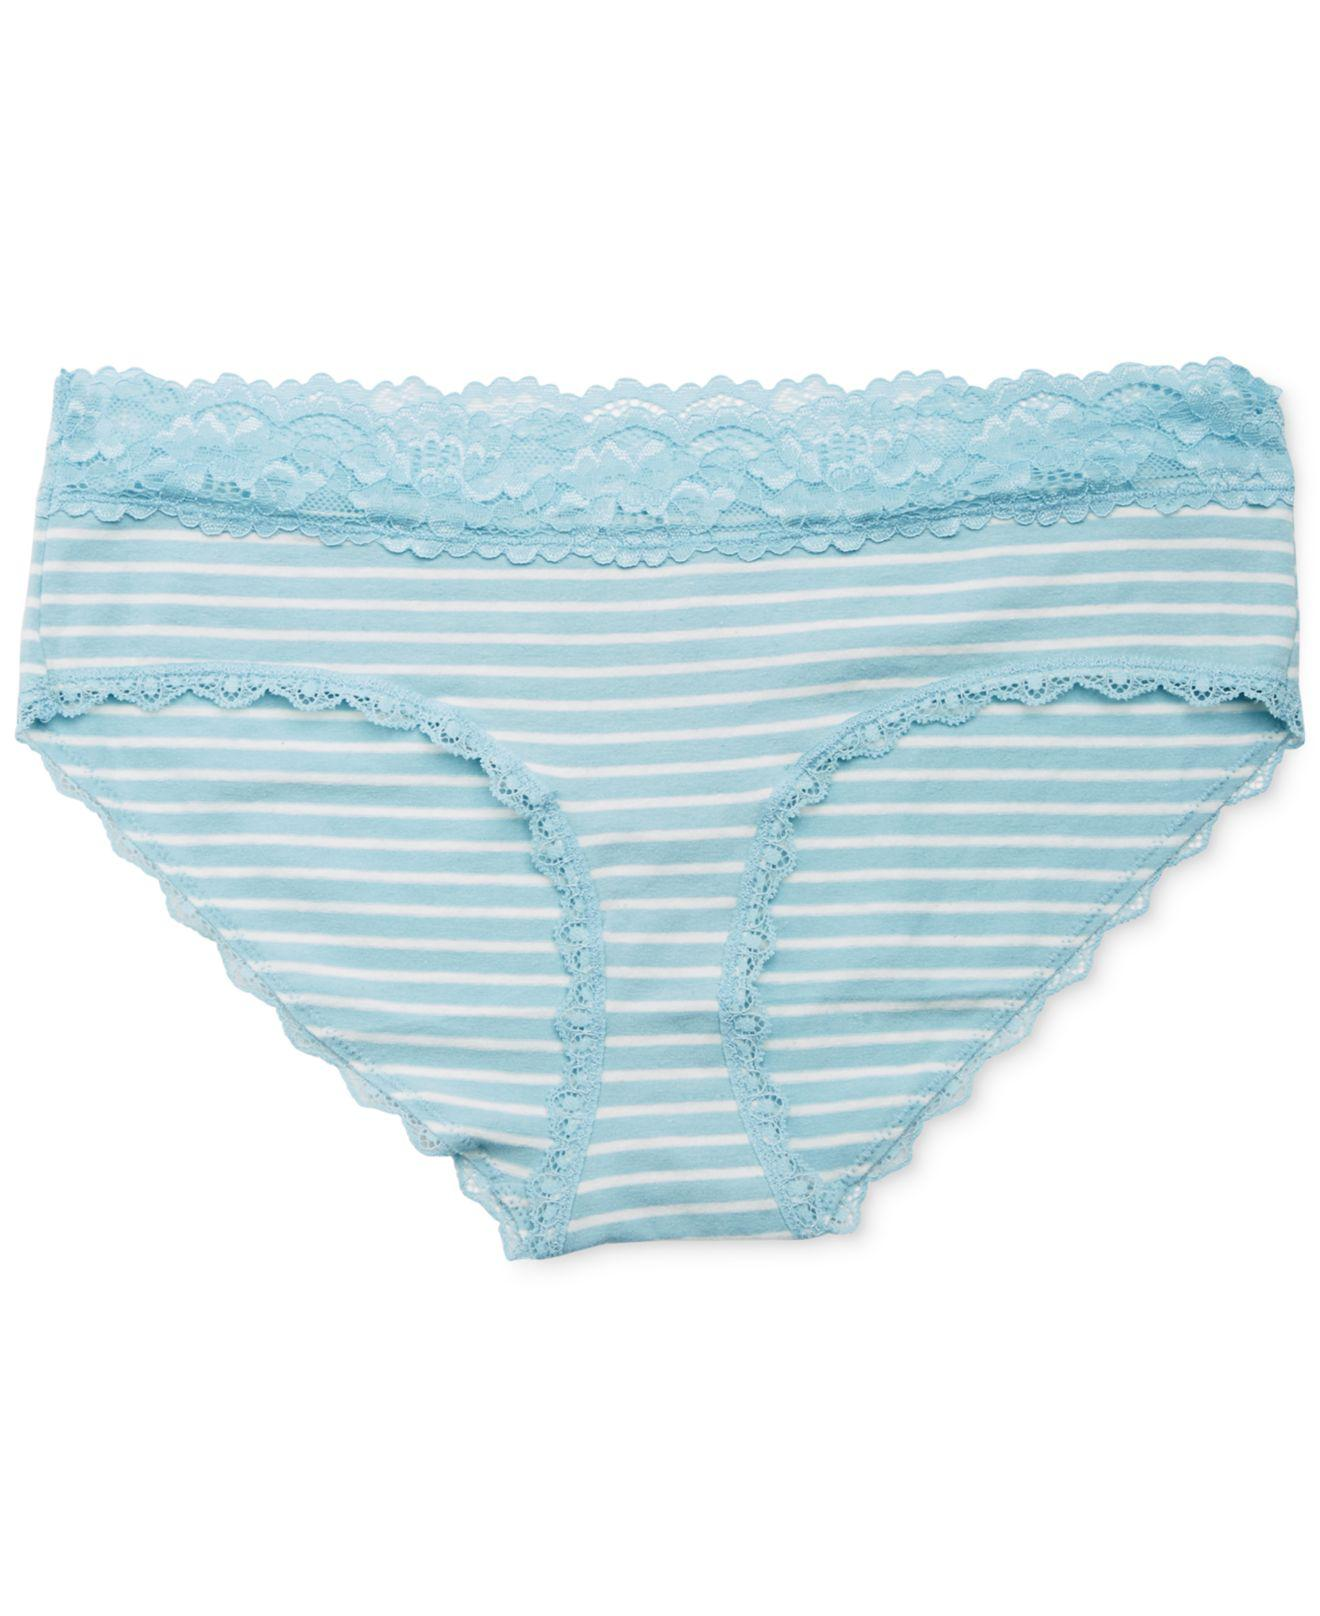 7984756e44 Lyst - Jessica Simpson Maternity Lace-trim Hipster Briefs in Blue